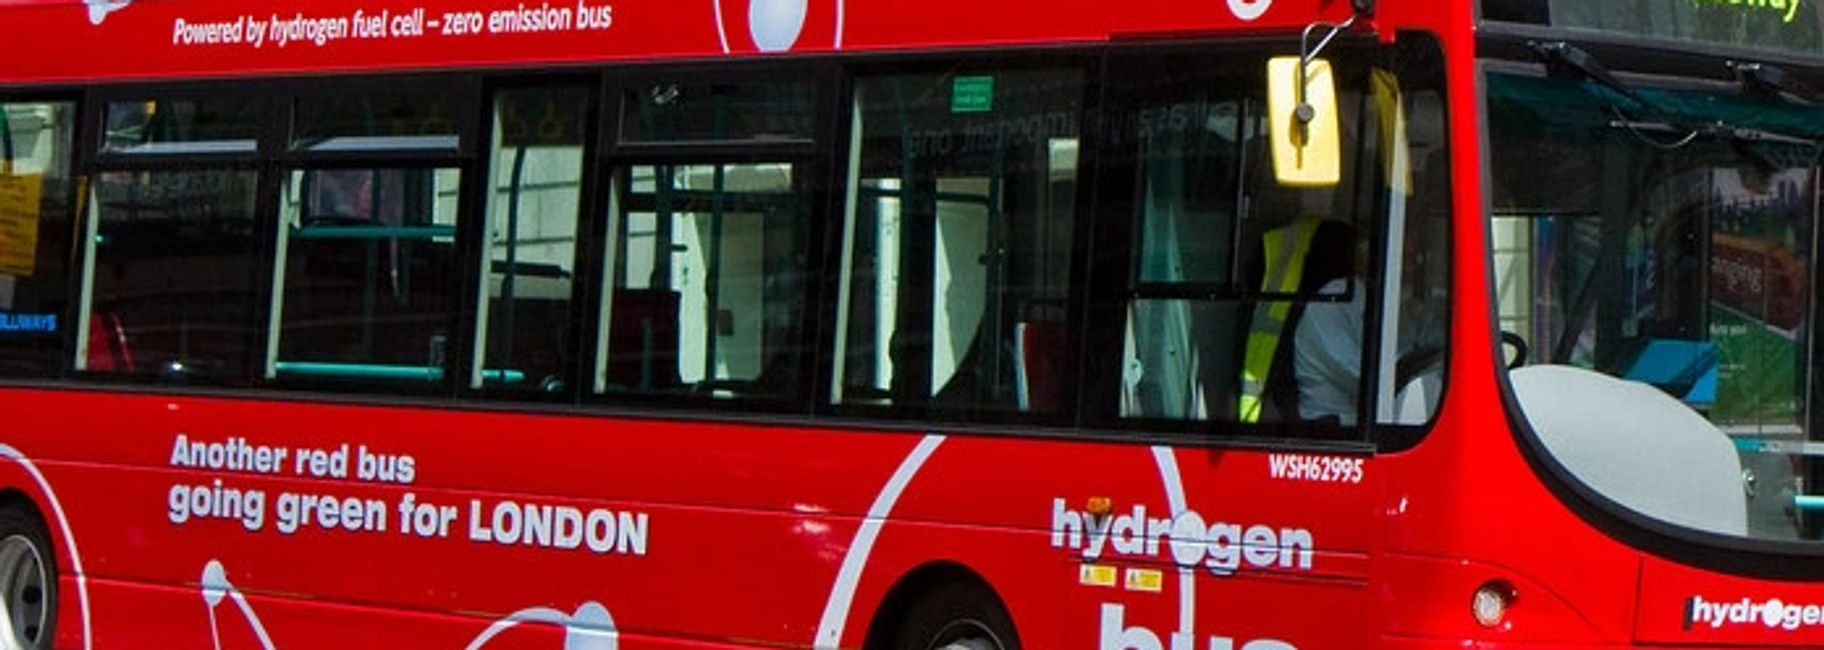 Zero emission London hydrogen (H2) fuel cell bus deployed as part of London hydrogen expansion proje